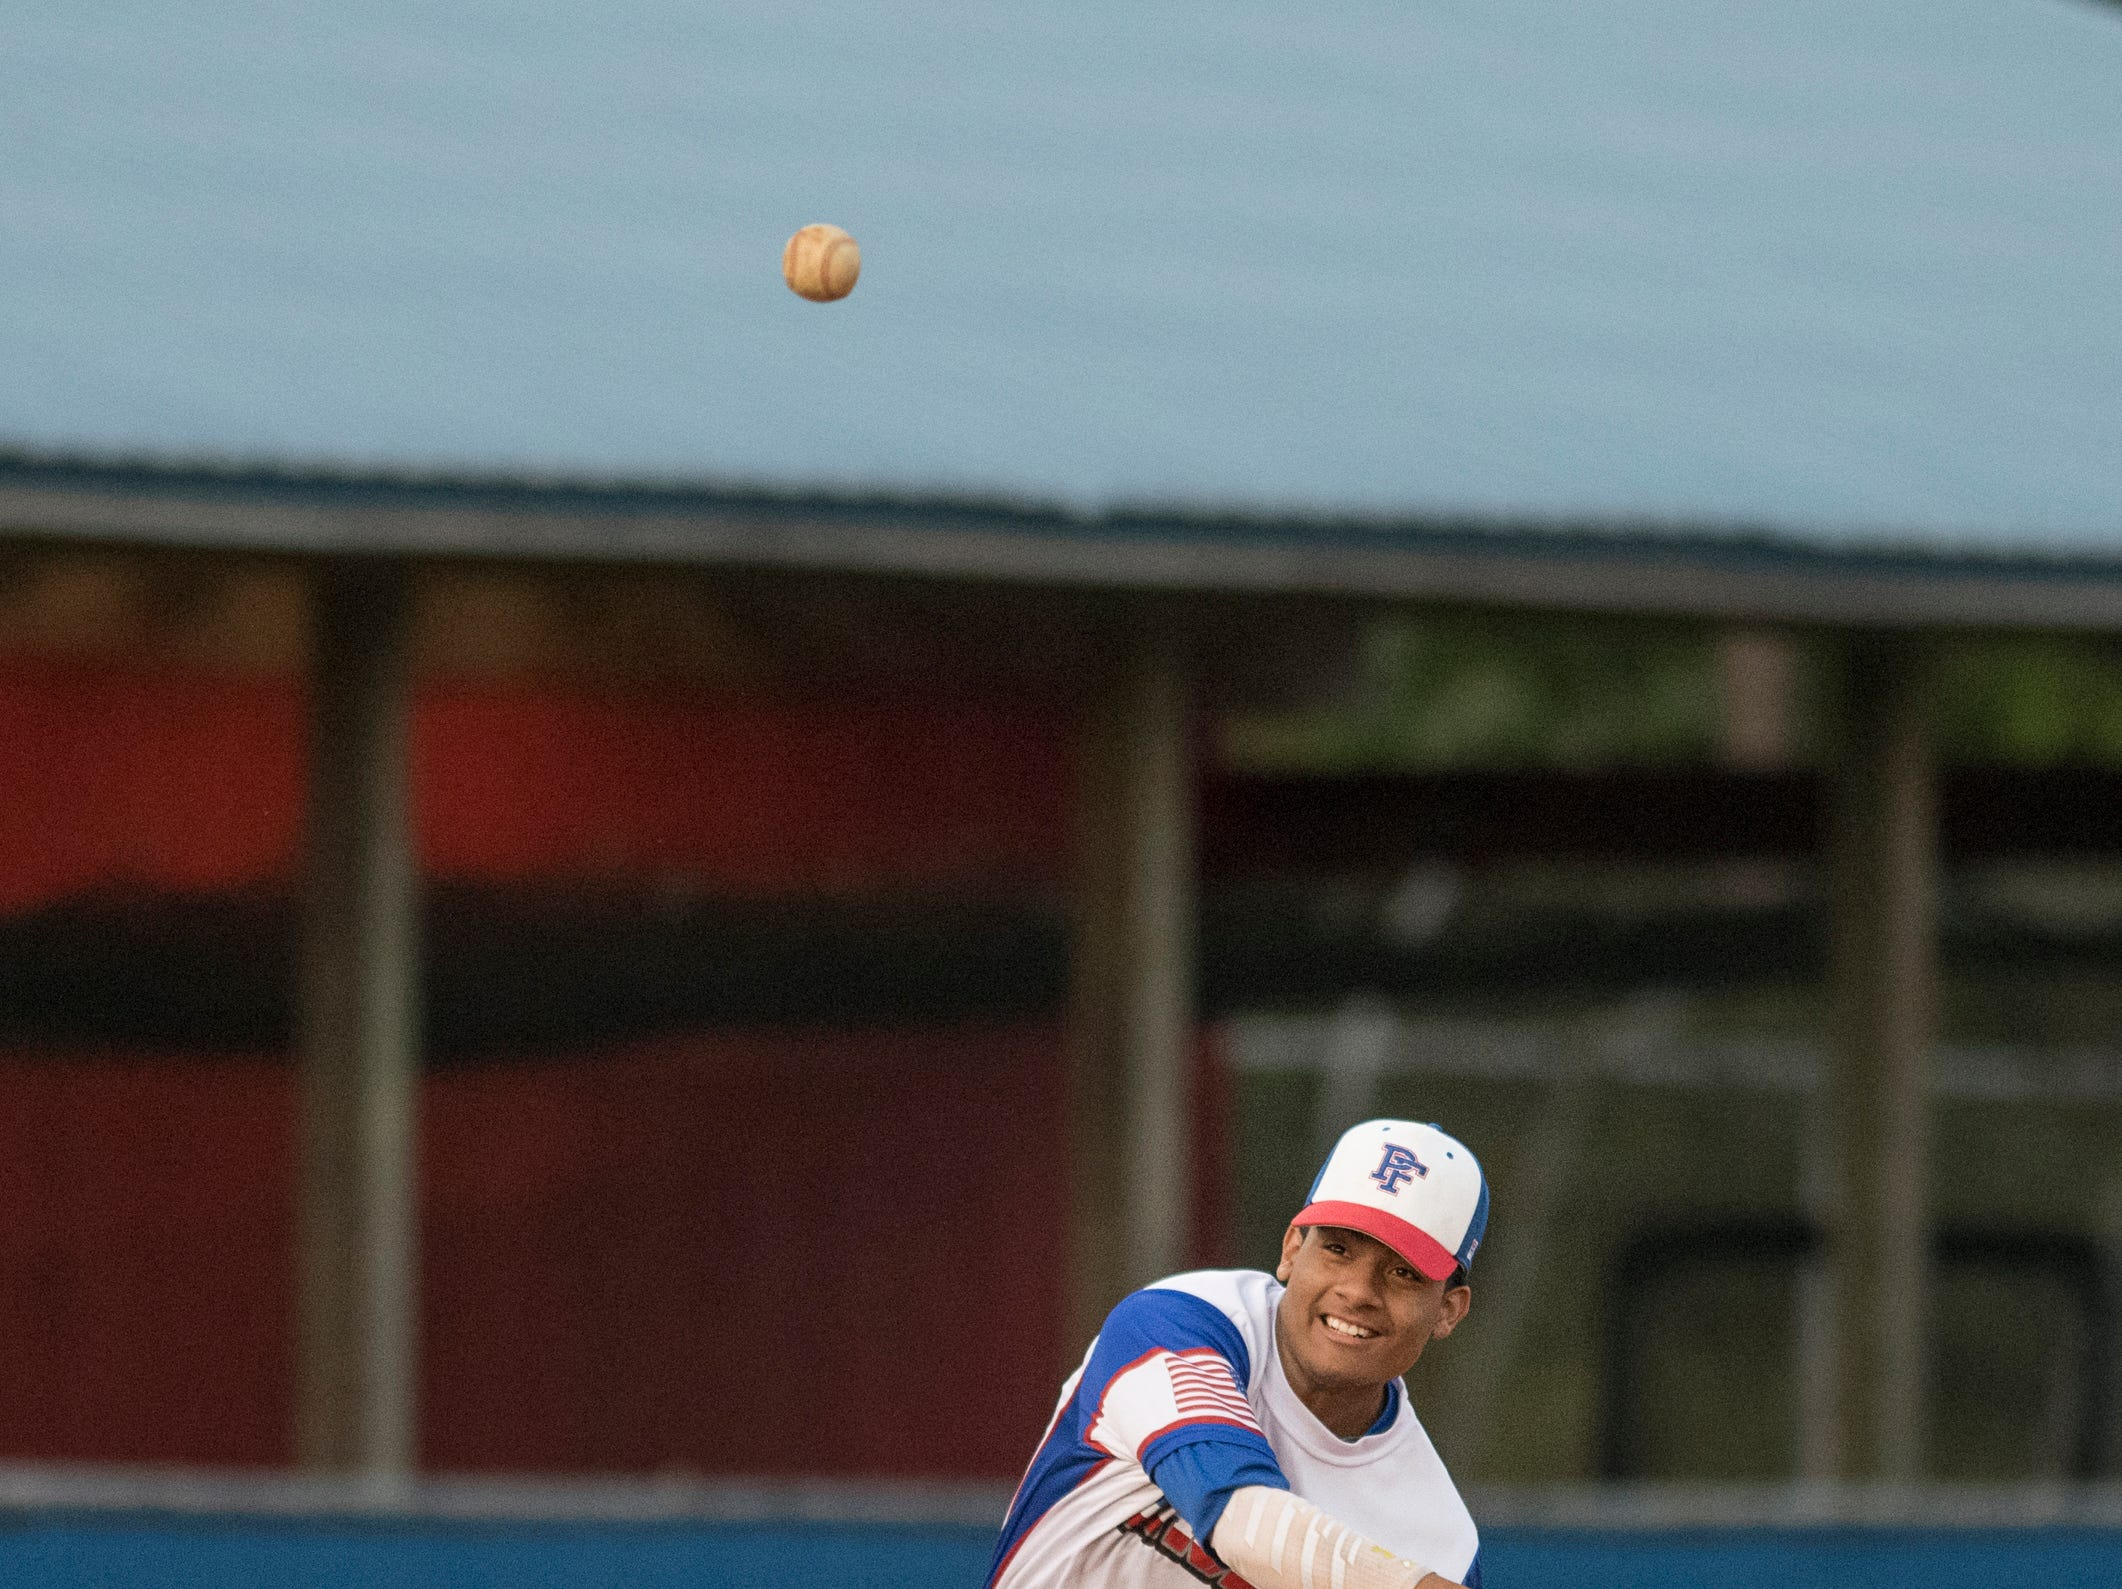 Third baseman Christian Munoz (9) tosses to first base while warming up in between innings during the Christian Educational Consortium vs Pine Forest baseball game at Pine Forest High School in Pensacola on Wednesday, April 3, 2019.